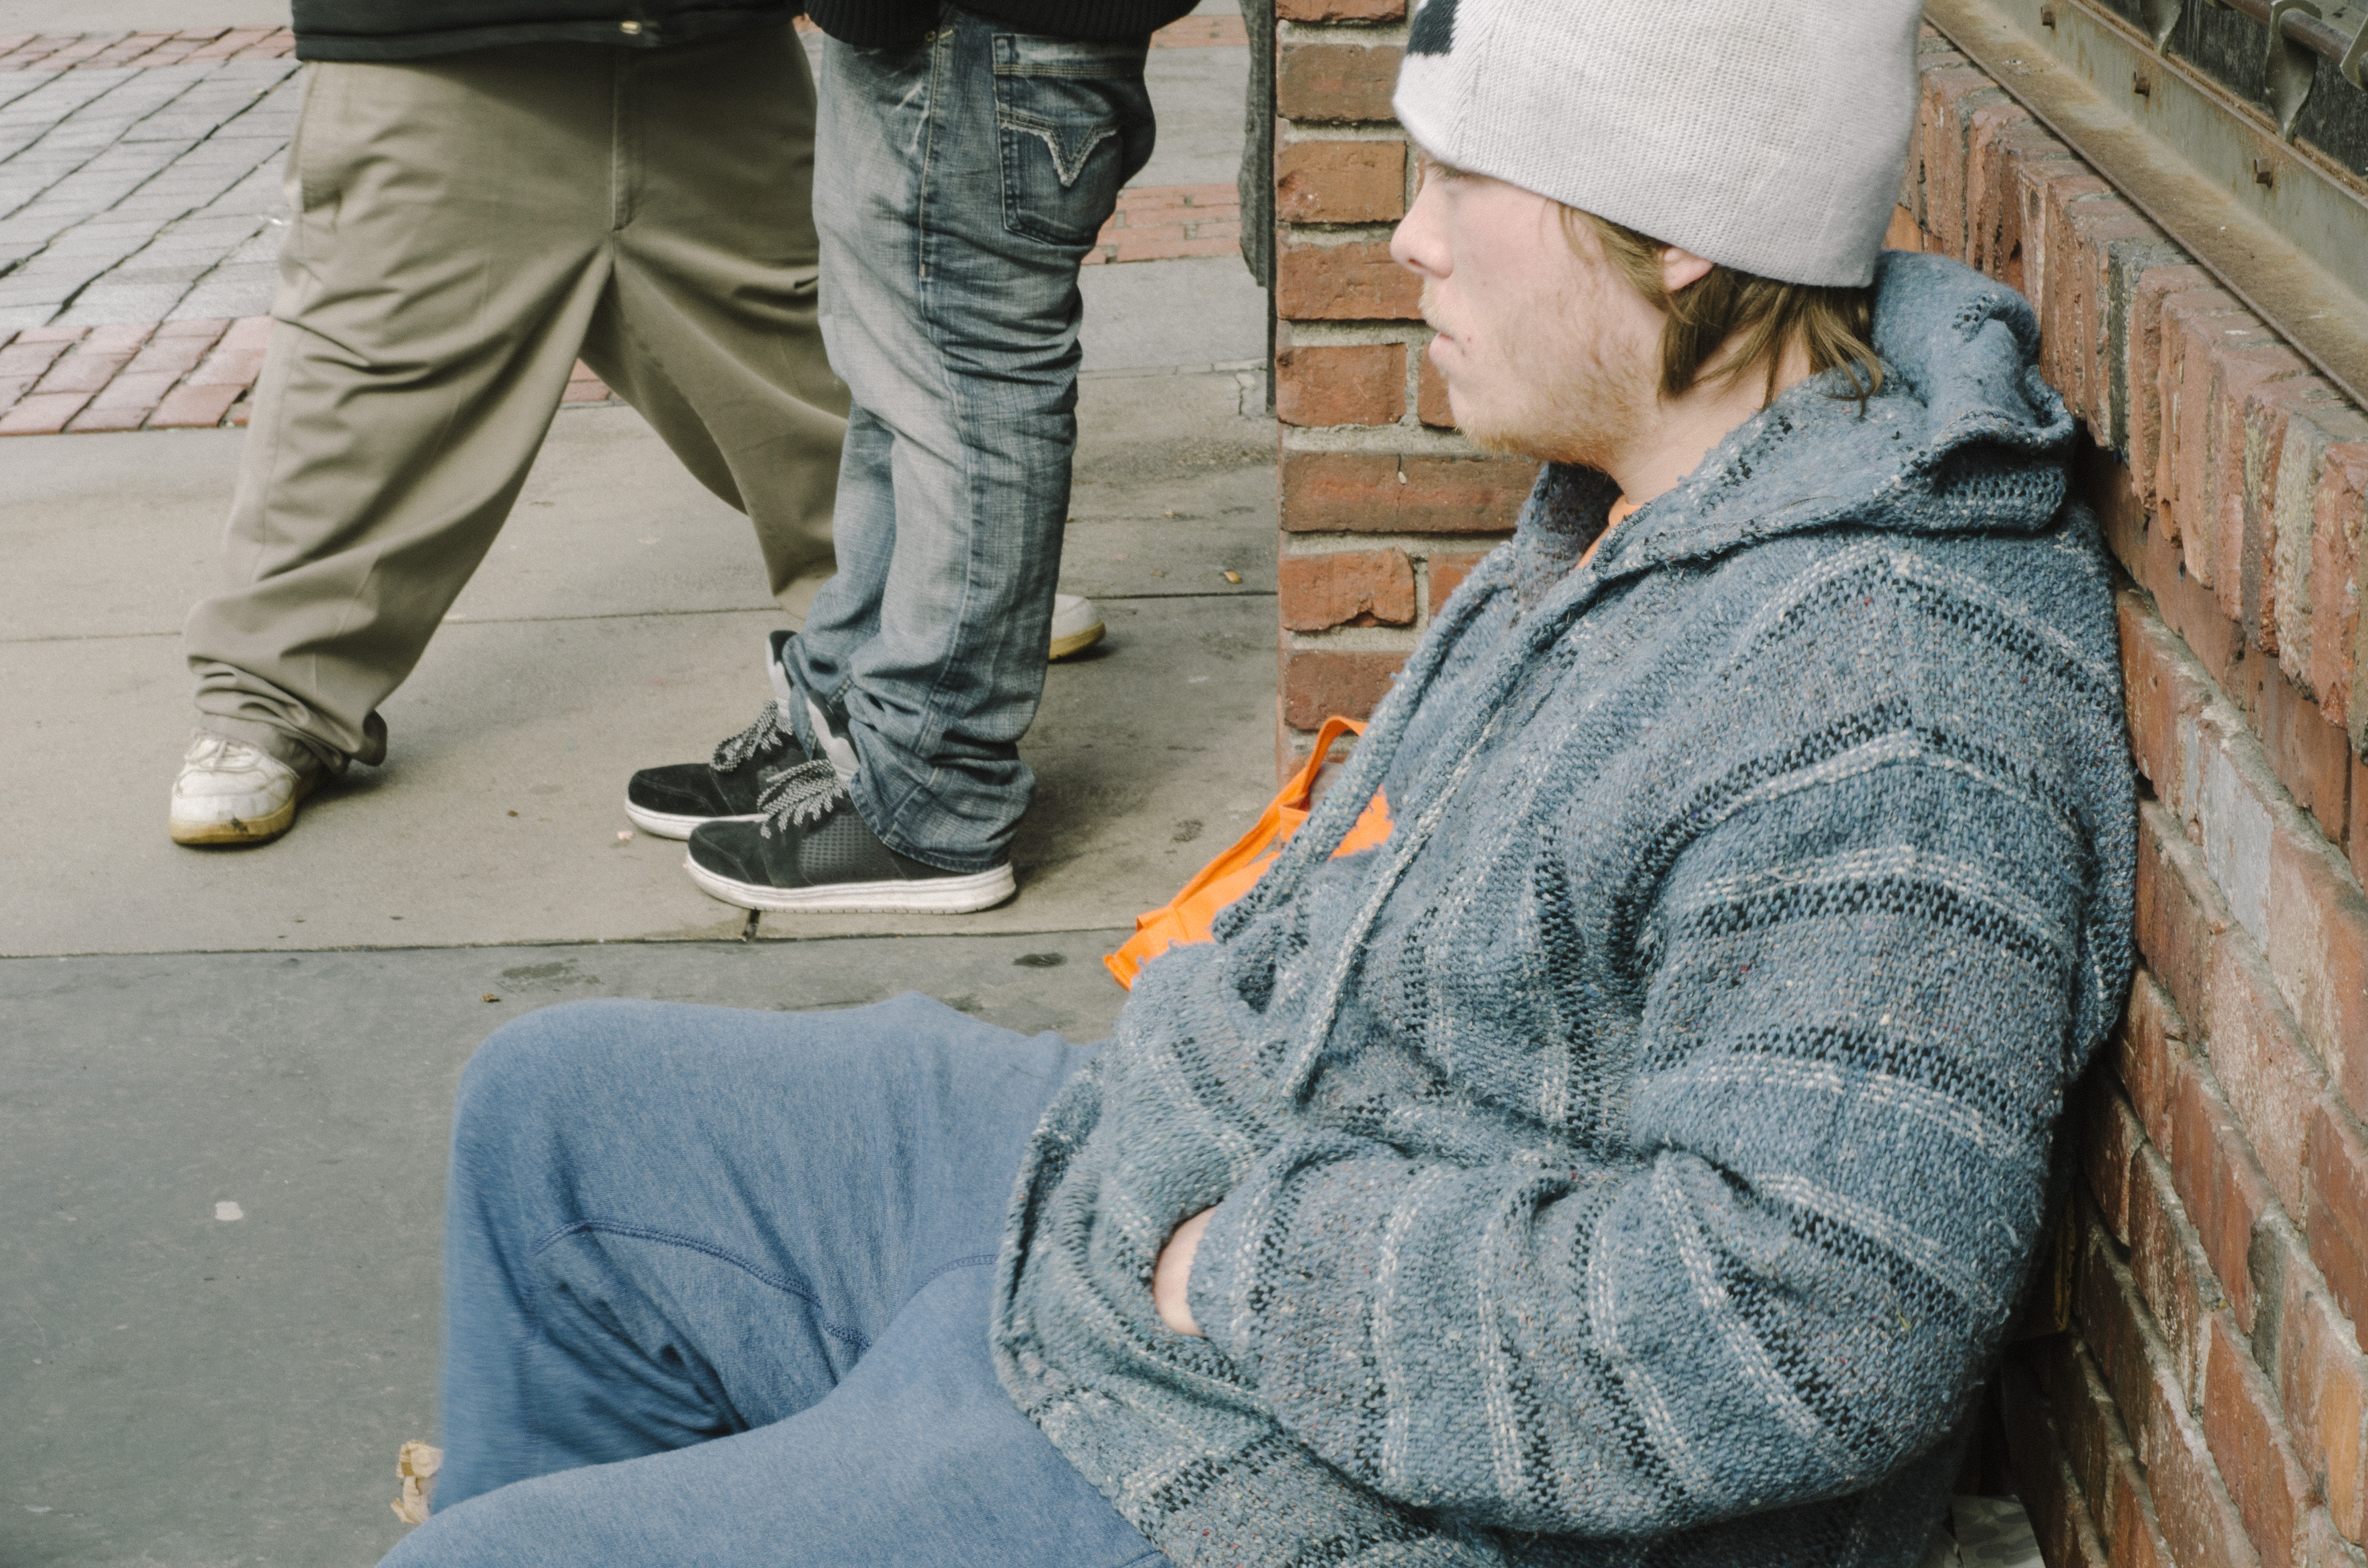 Justin Peel, 21, sits outside the McDonald's during most of his daytime.